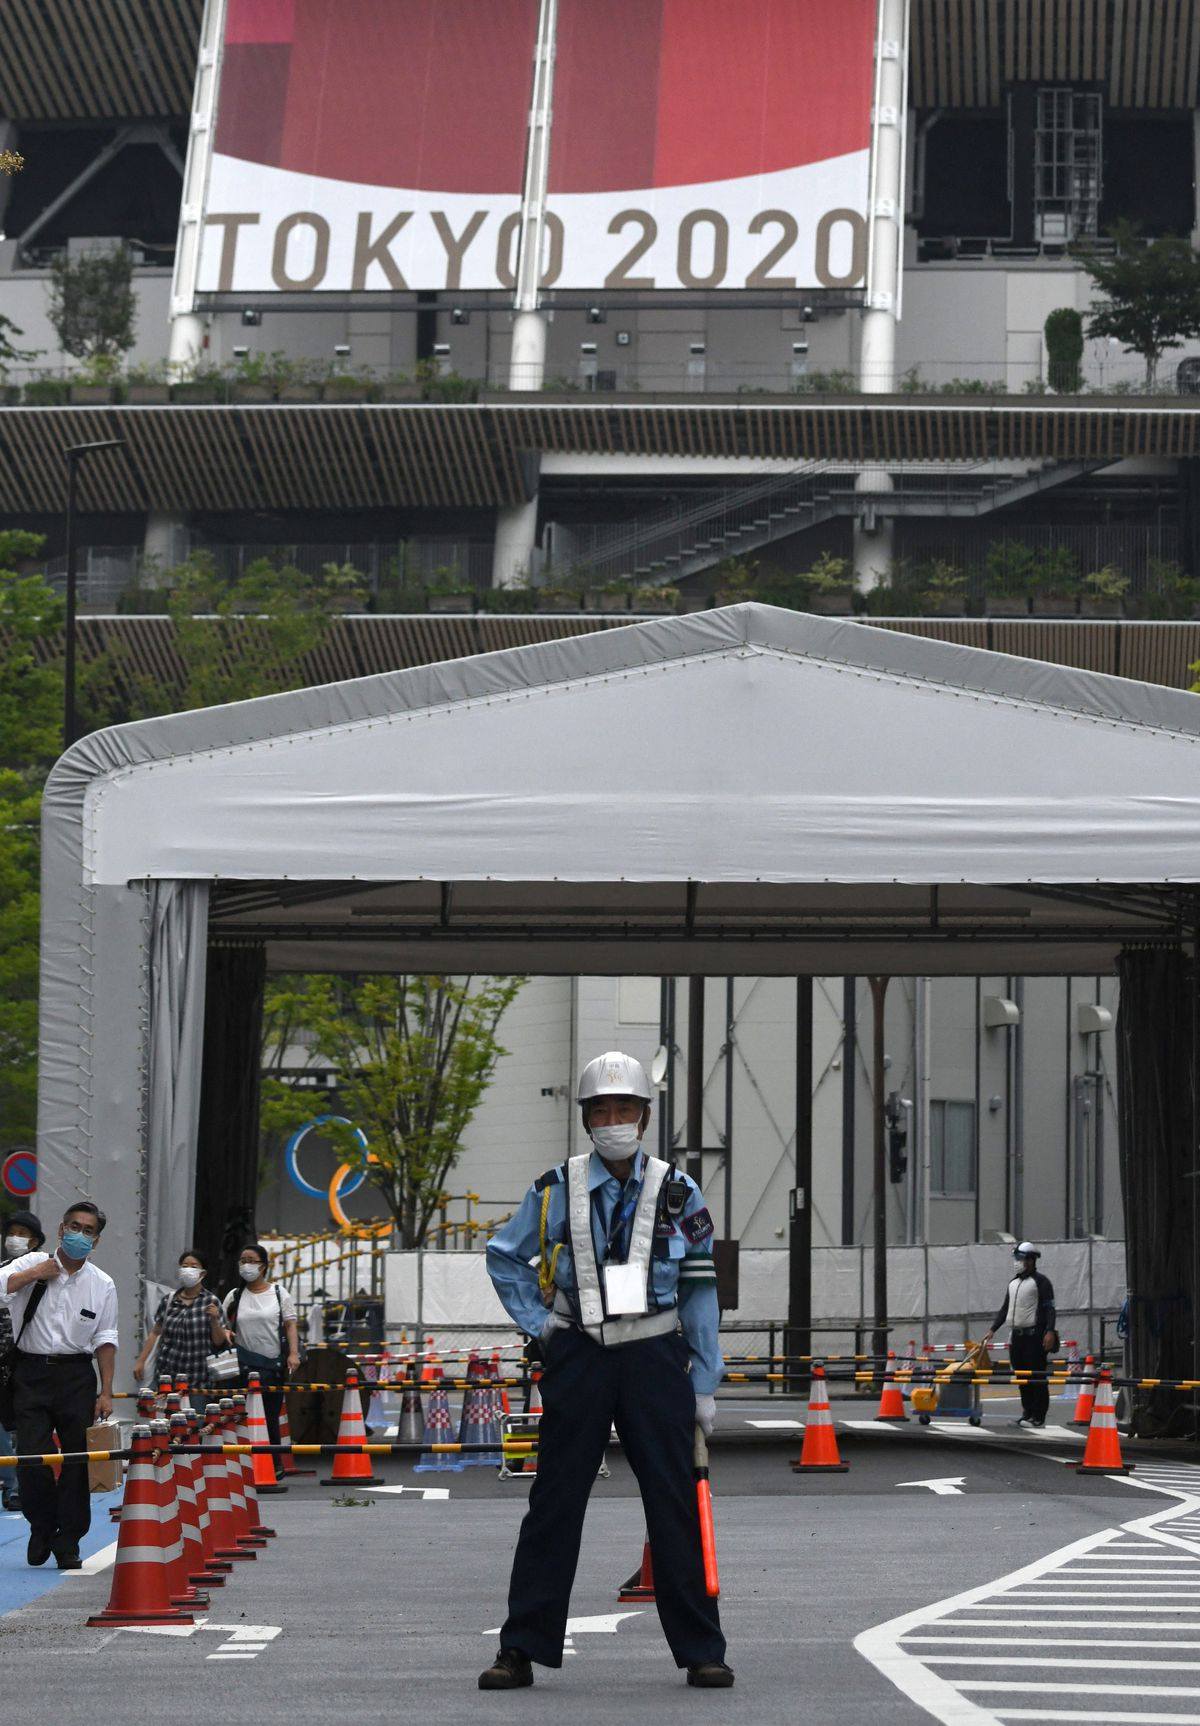 A security guard stands watch over an empty Japan National Stadium